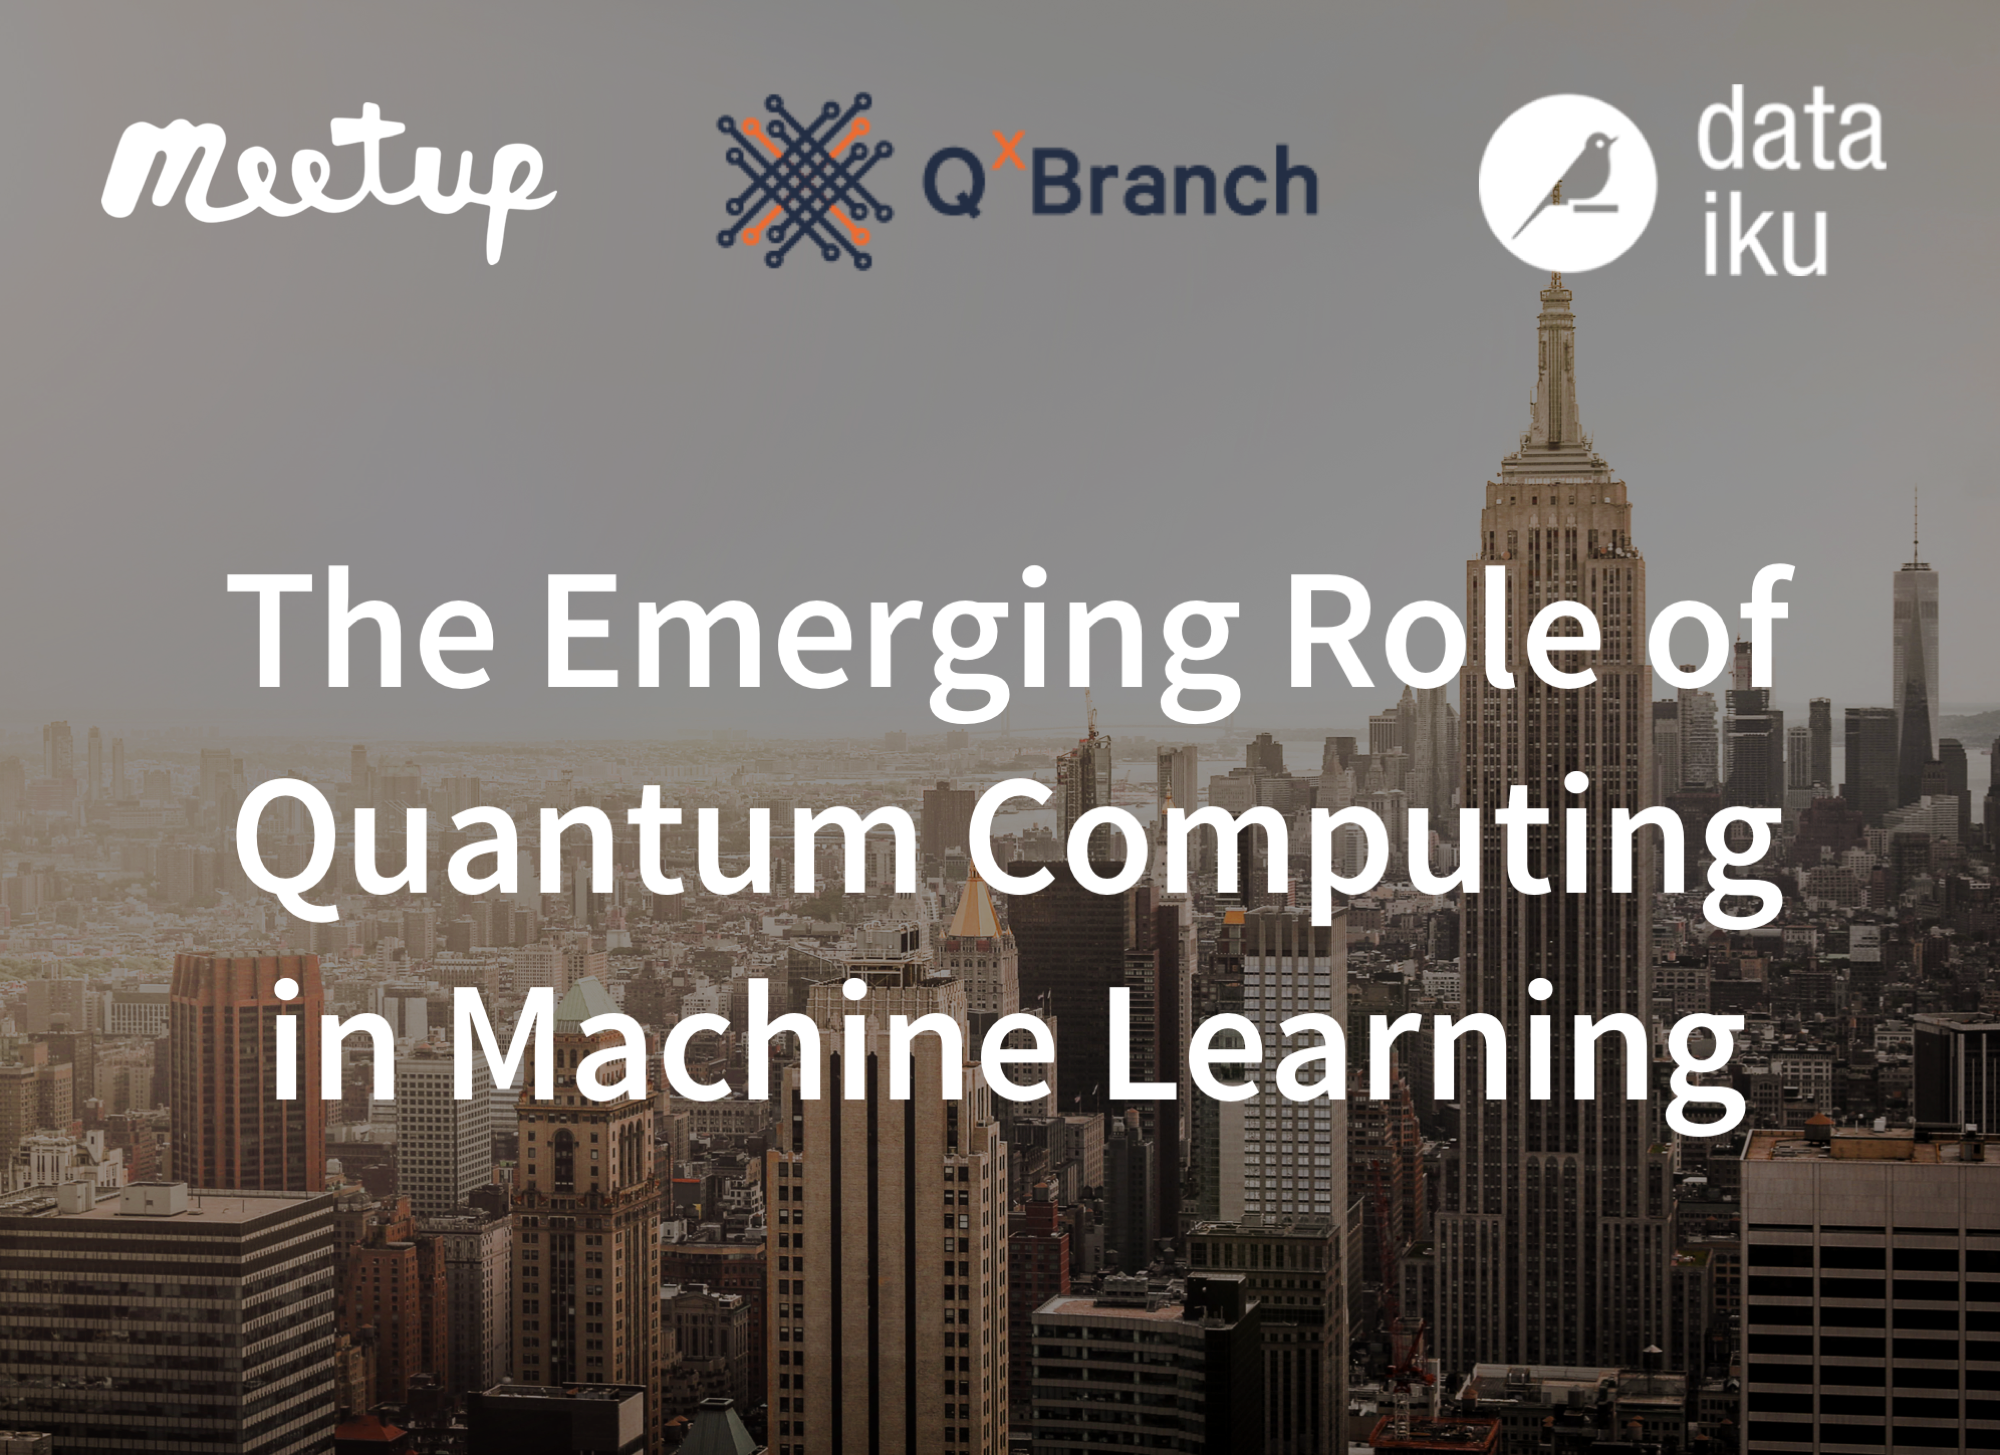 The Emerging Role of Quantum Computing in Machine Learning